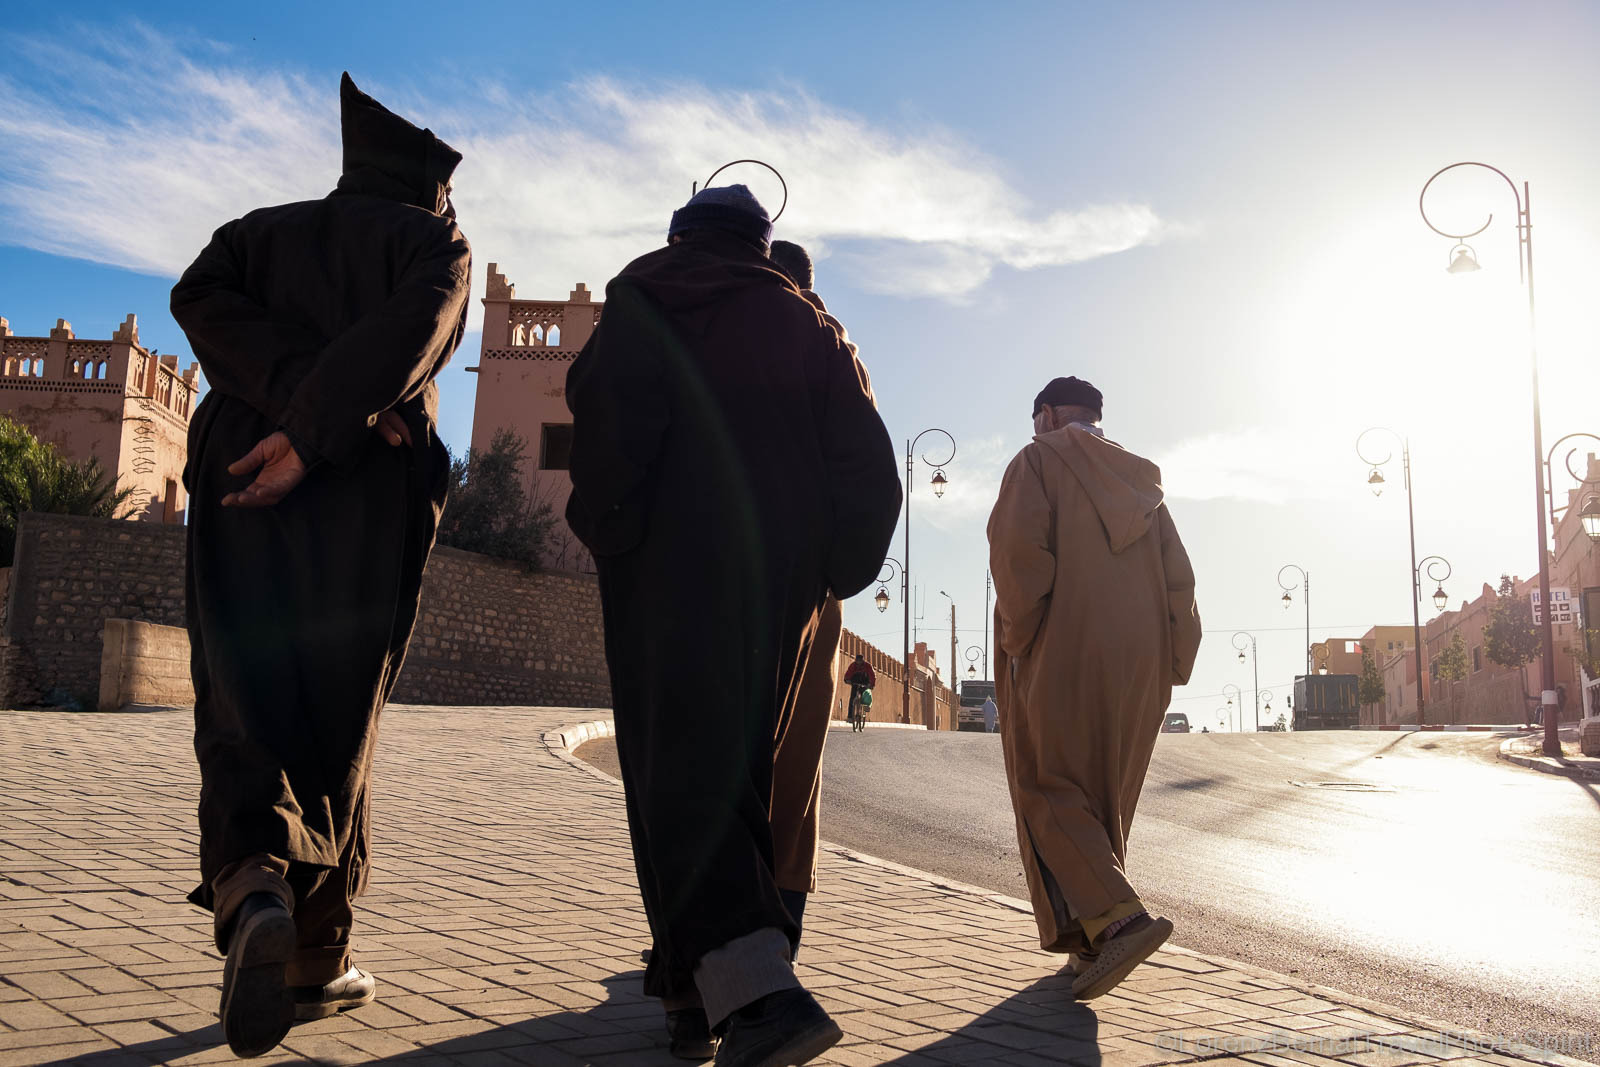 Silhouettes of men in the traditional Djellaba in Tinghir, Morocco